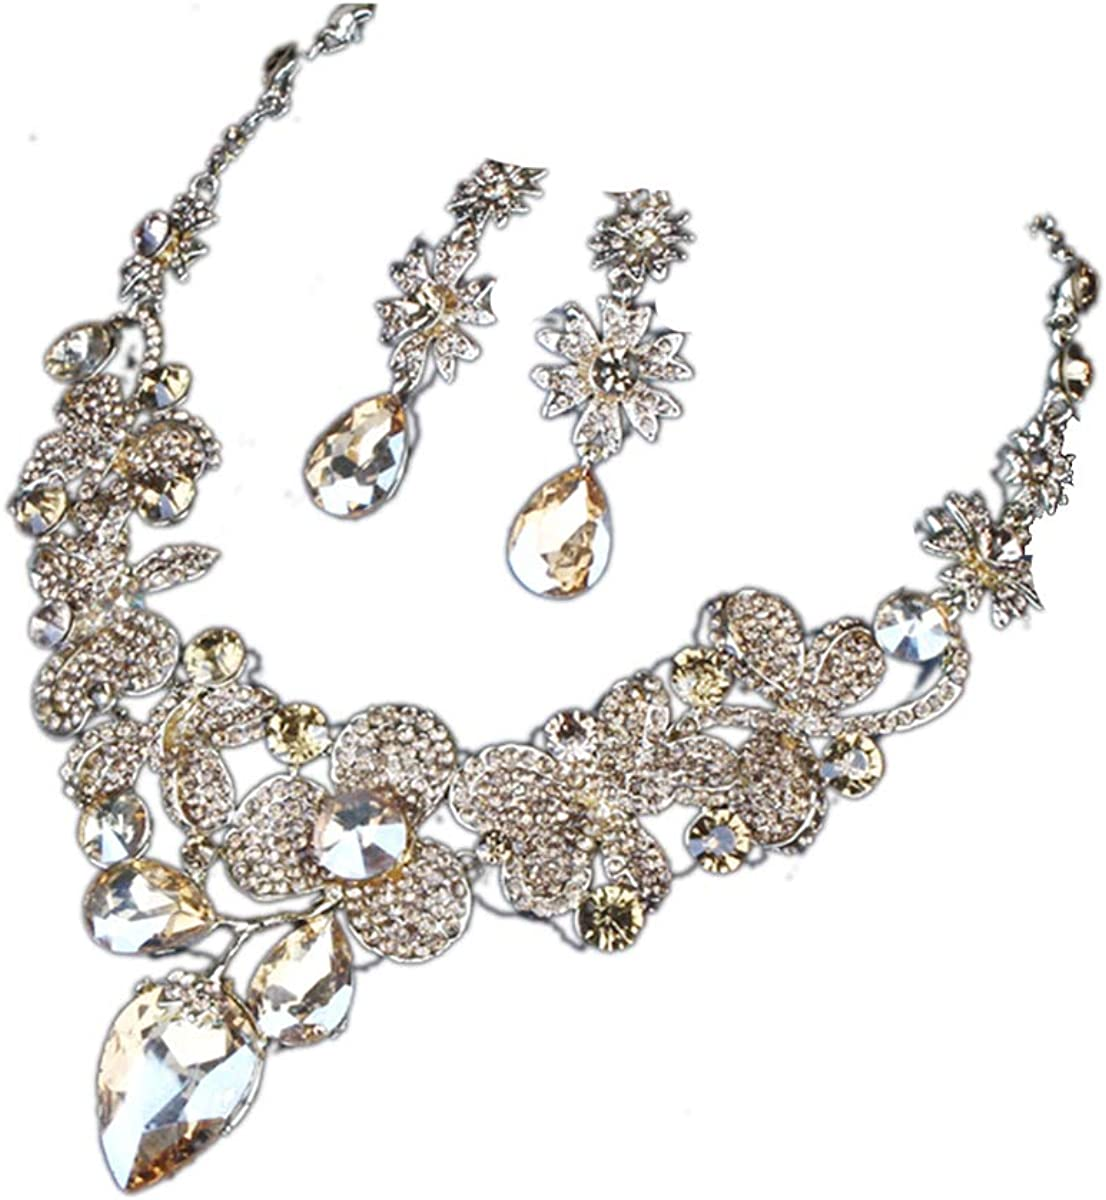 ENUUNO Bridal prom Costume jewelry Champagne and white Crystal Choker Pendant Bib Statement Charm Necklace and Earrings wedding jewelry sets for brides